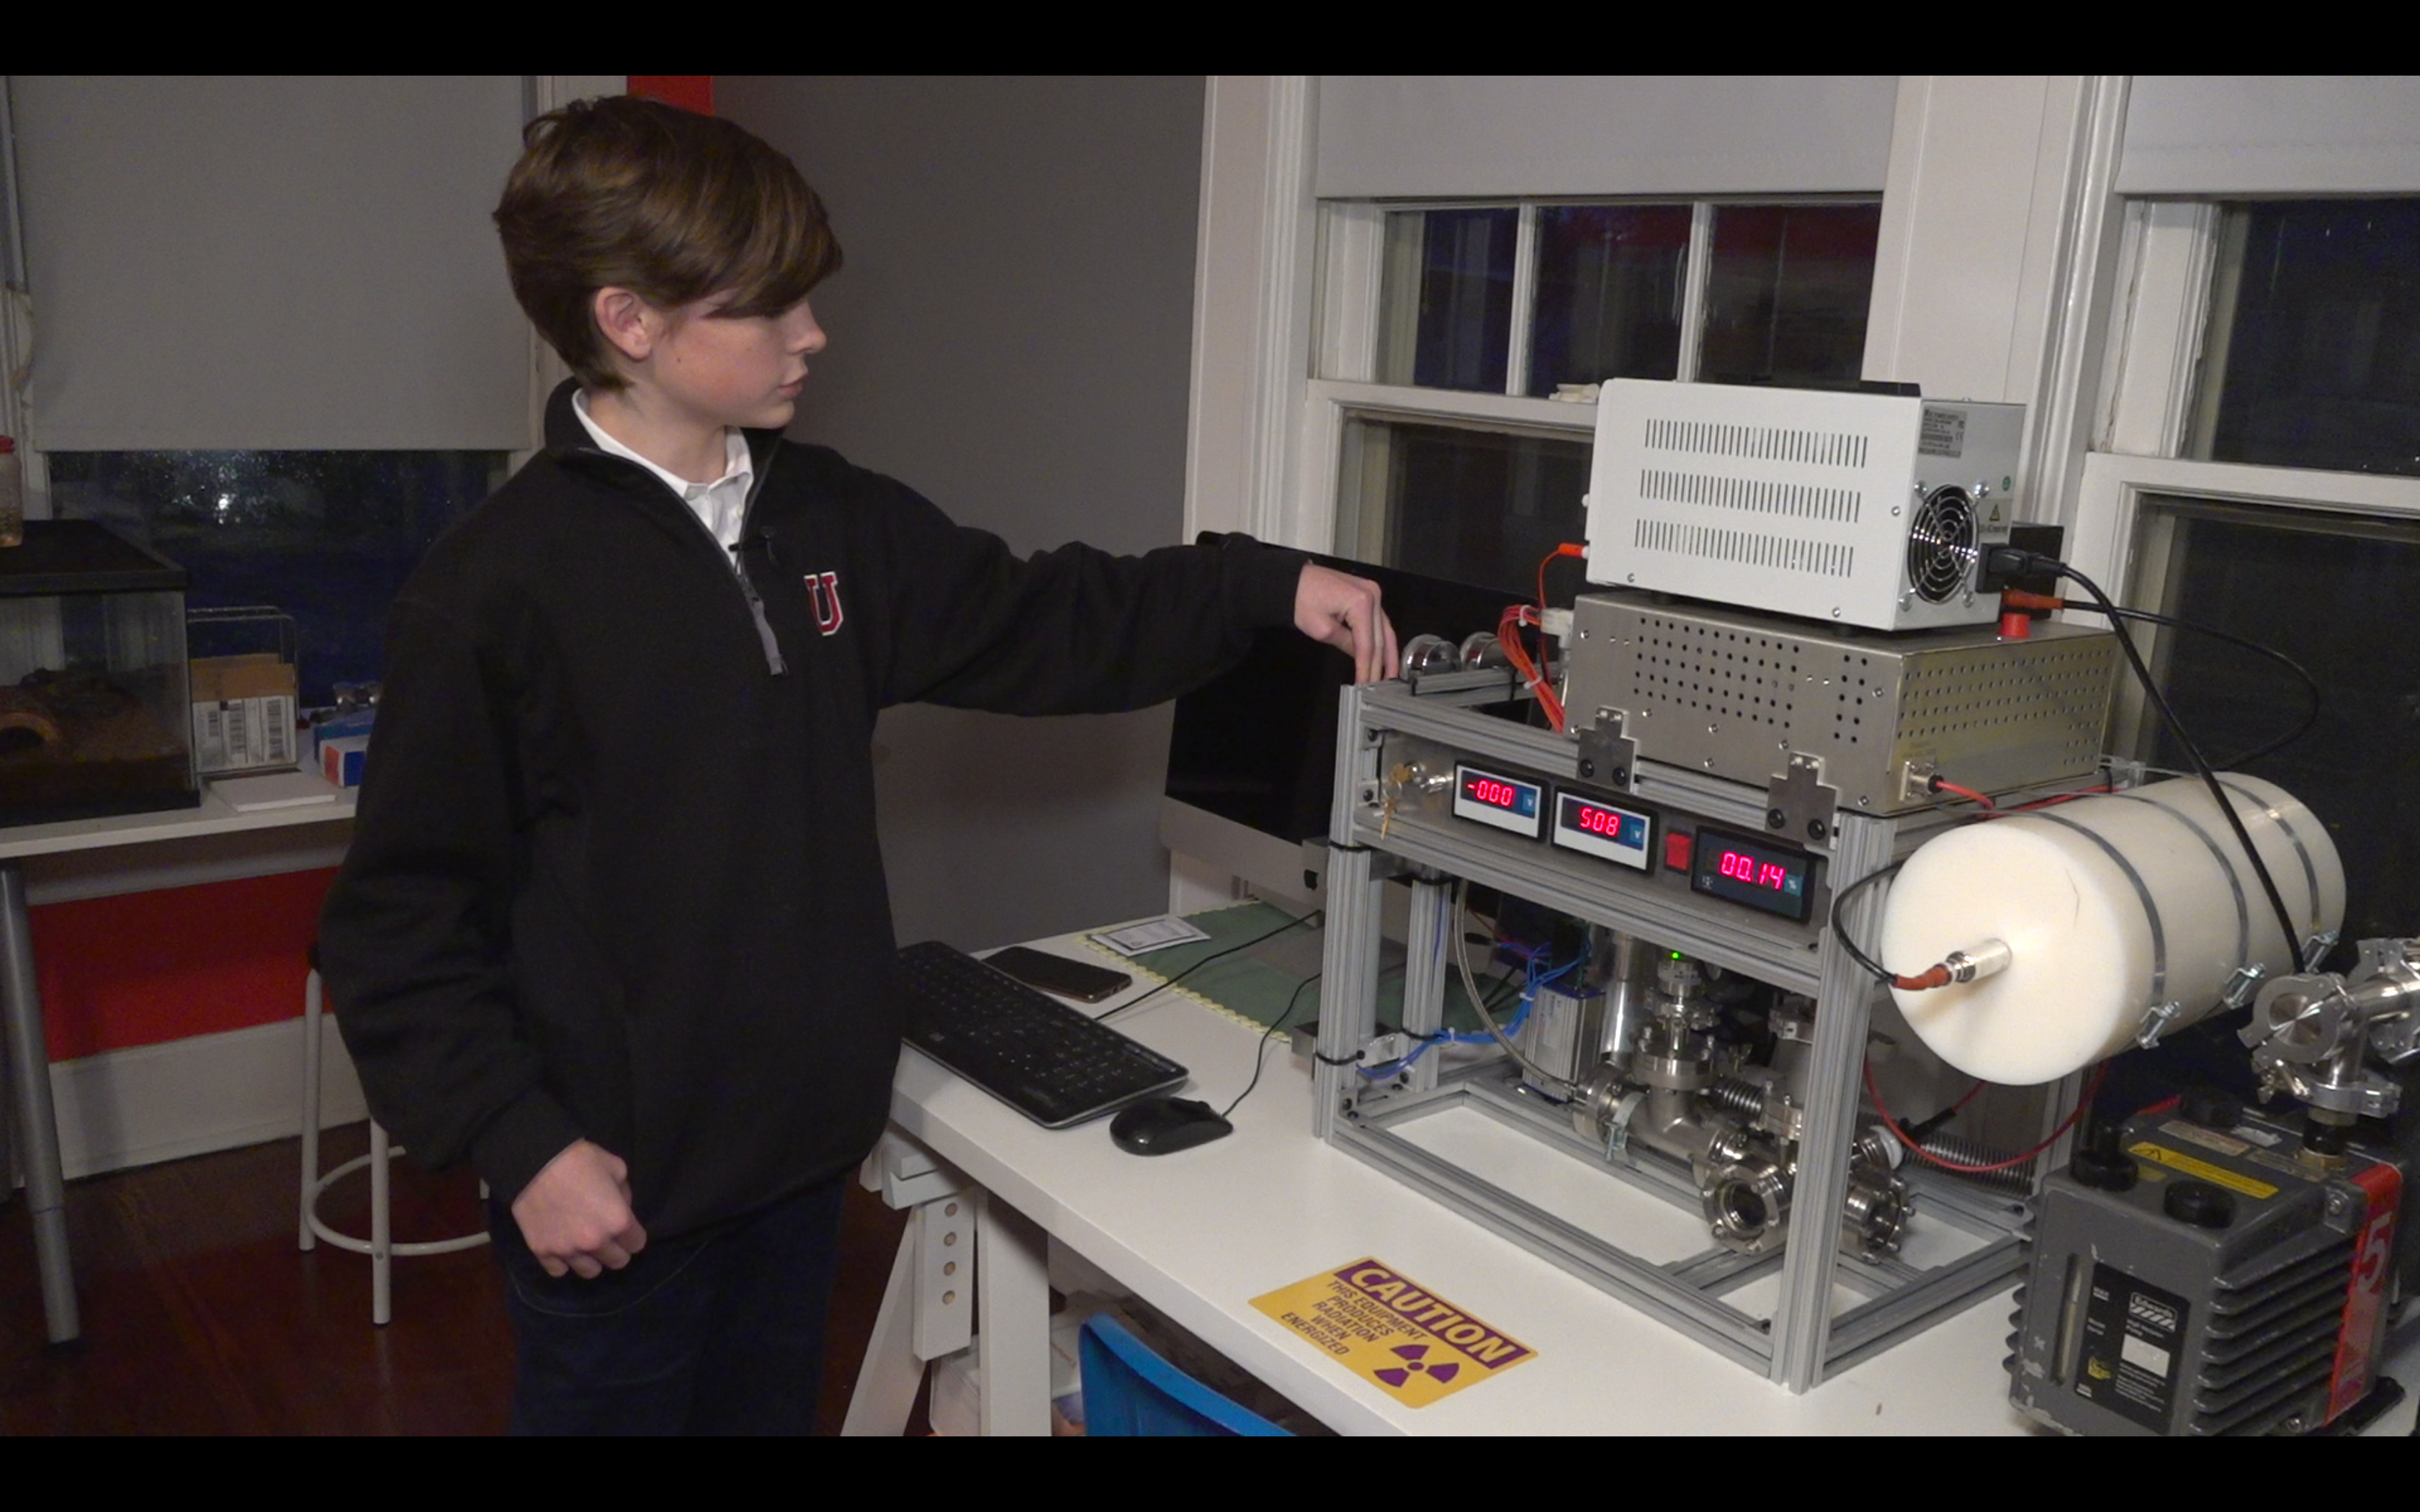 Teen builds working nuclear fusion reactor in Memphis home